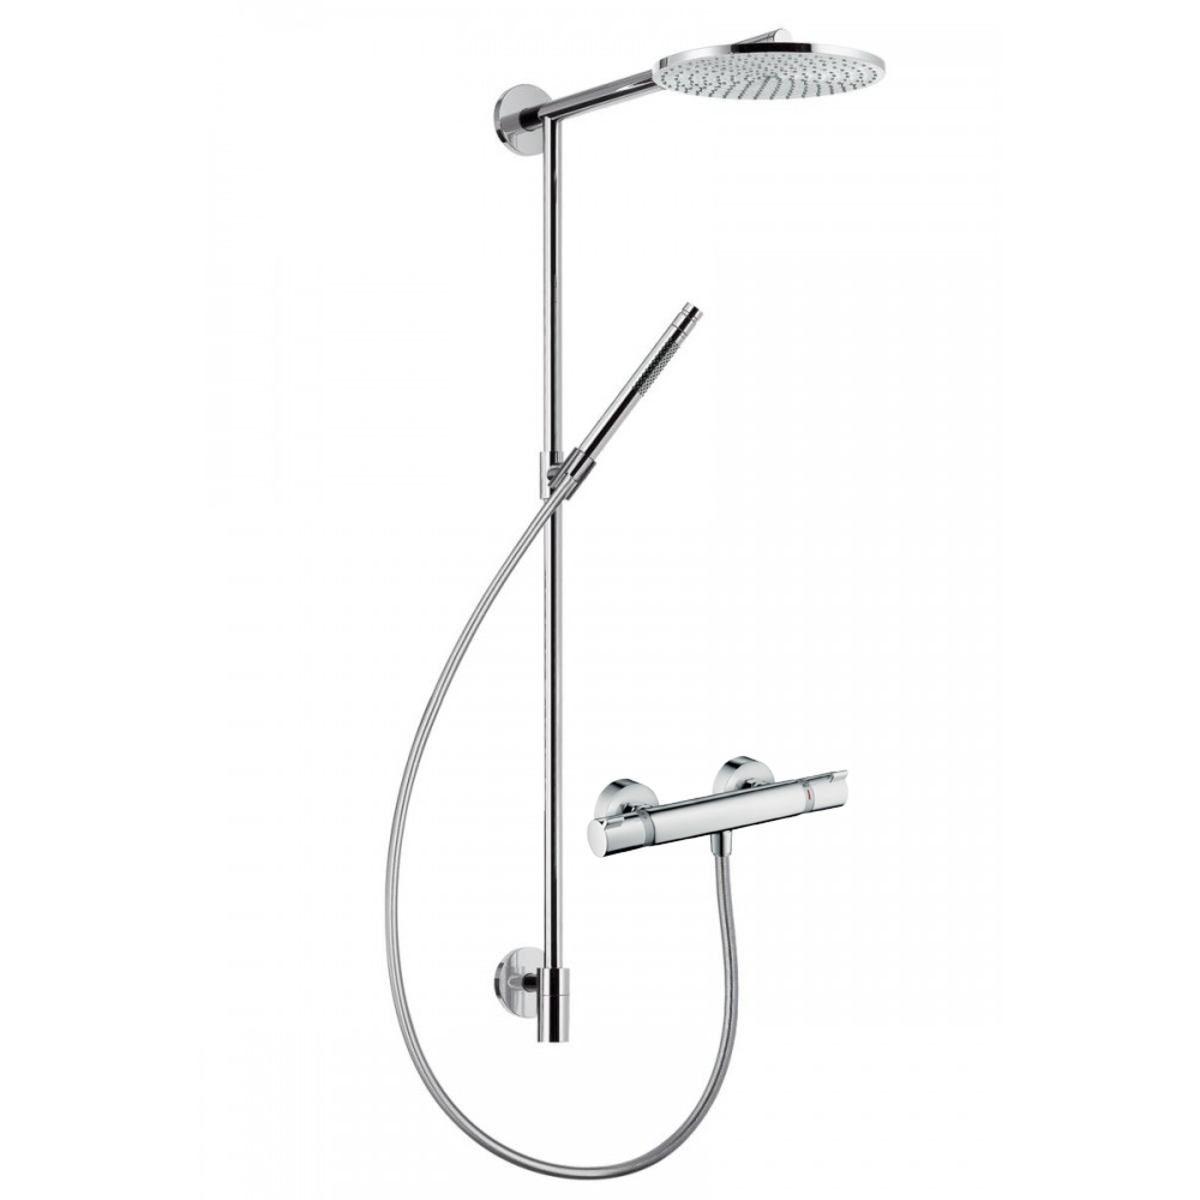 hansgrohe raindance connect douchesysteem air 240mm voorsprong 460mm met douchekraan chroom. Black Bedroom Furniture Sets. Home Design Ideas